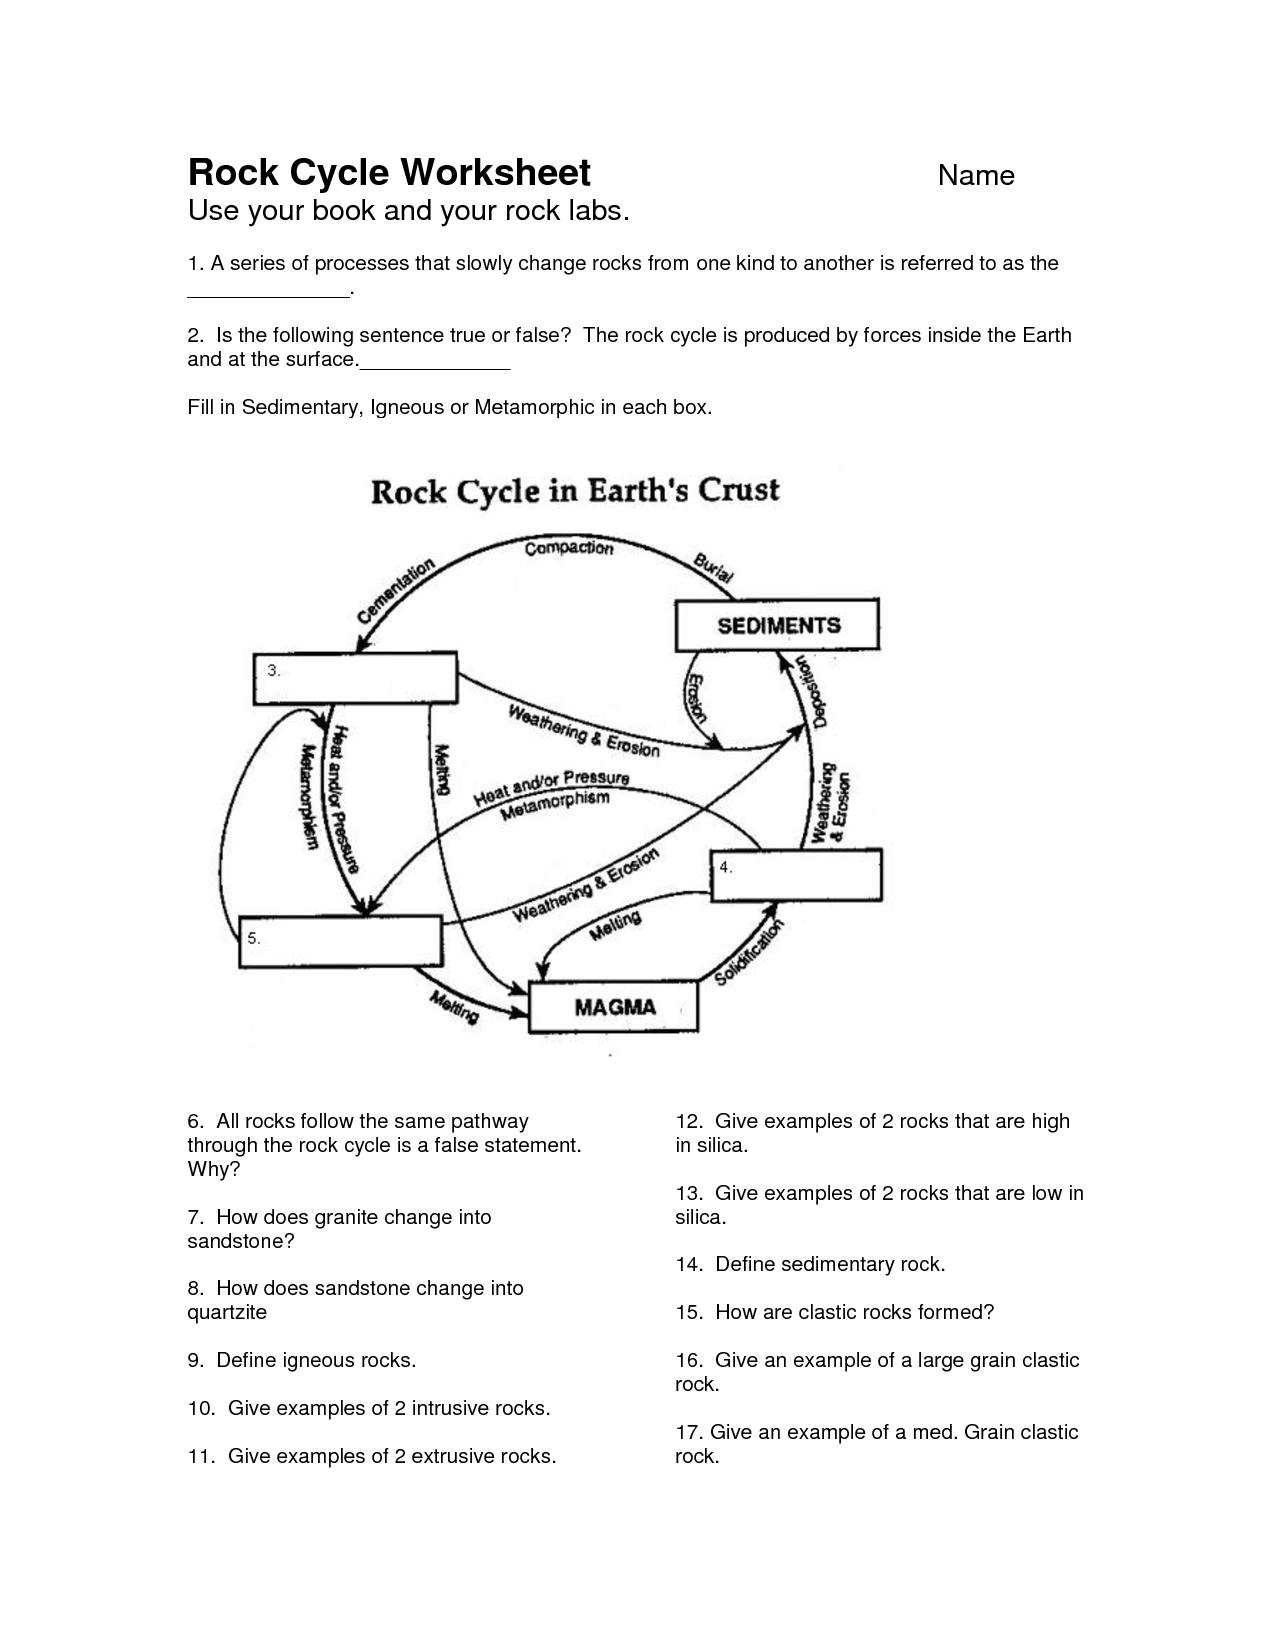 Blank Rock Cycle Worksheets Manual Guide